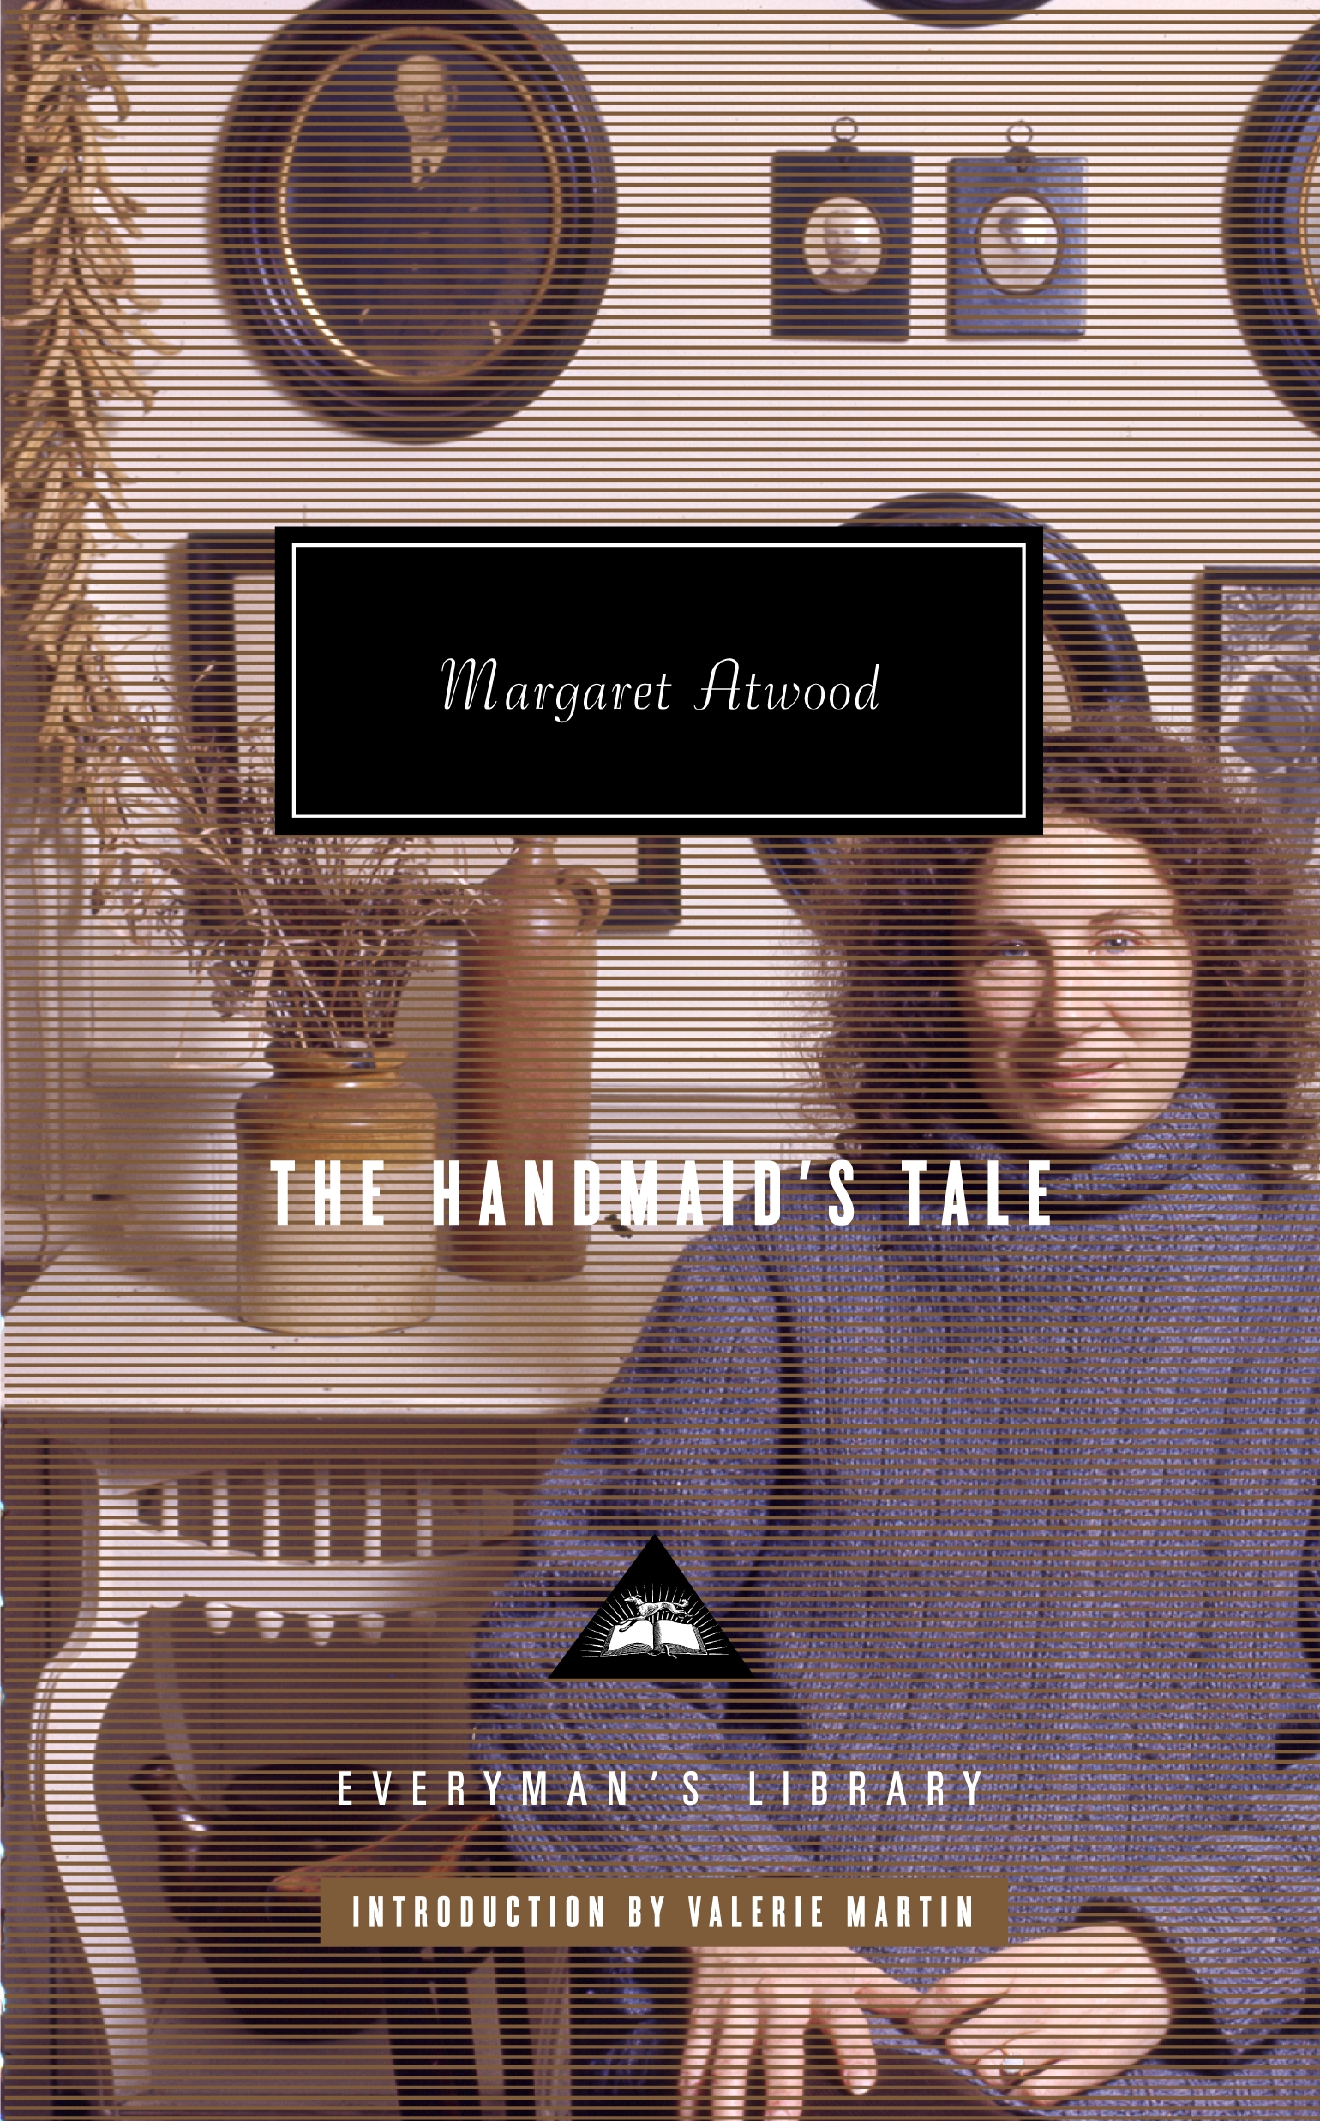 """Handmaid's Tale"" by Margaret Atwood (Image: University Book Store / Penguin)"